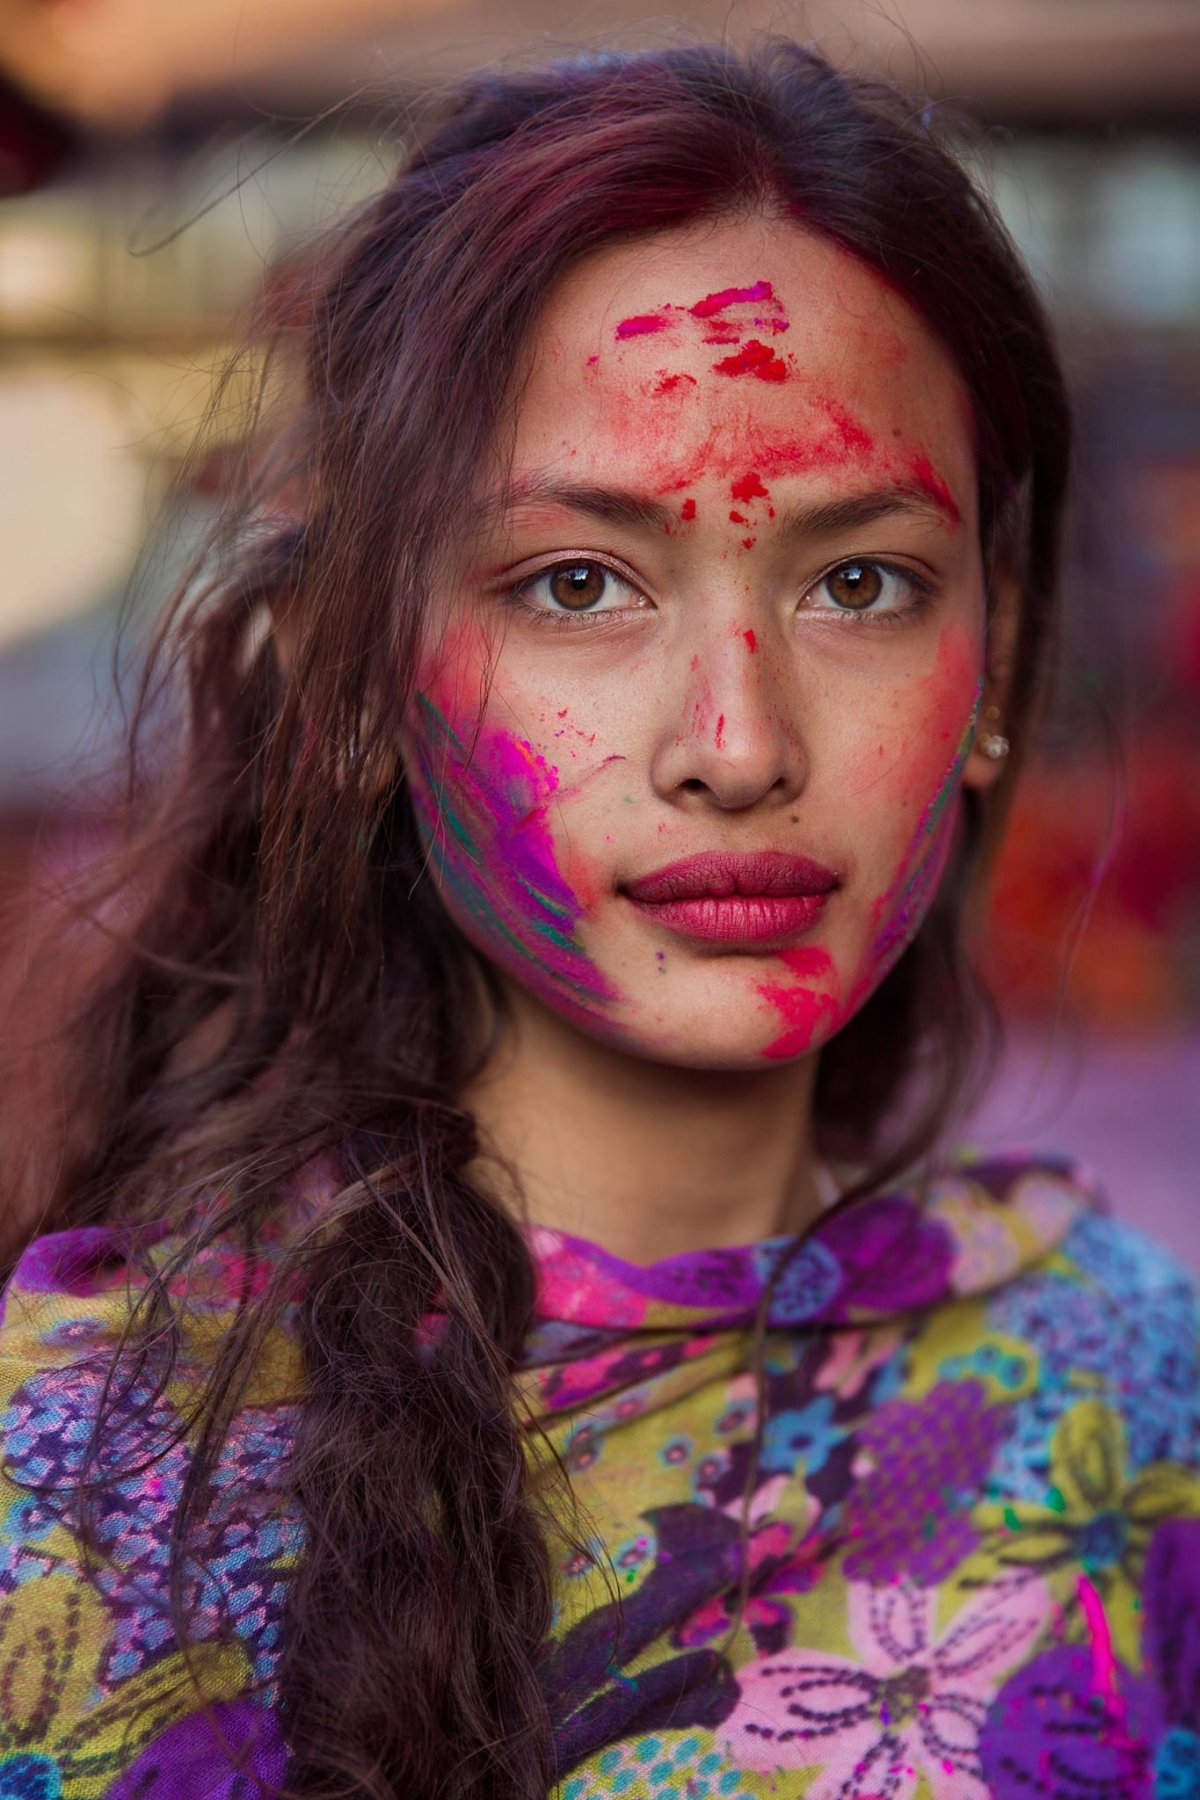 Sona during the Holi festival in Kathmandu, Nepal photographed by Mihaela Noroc